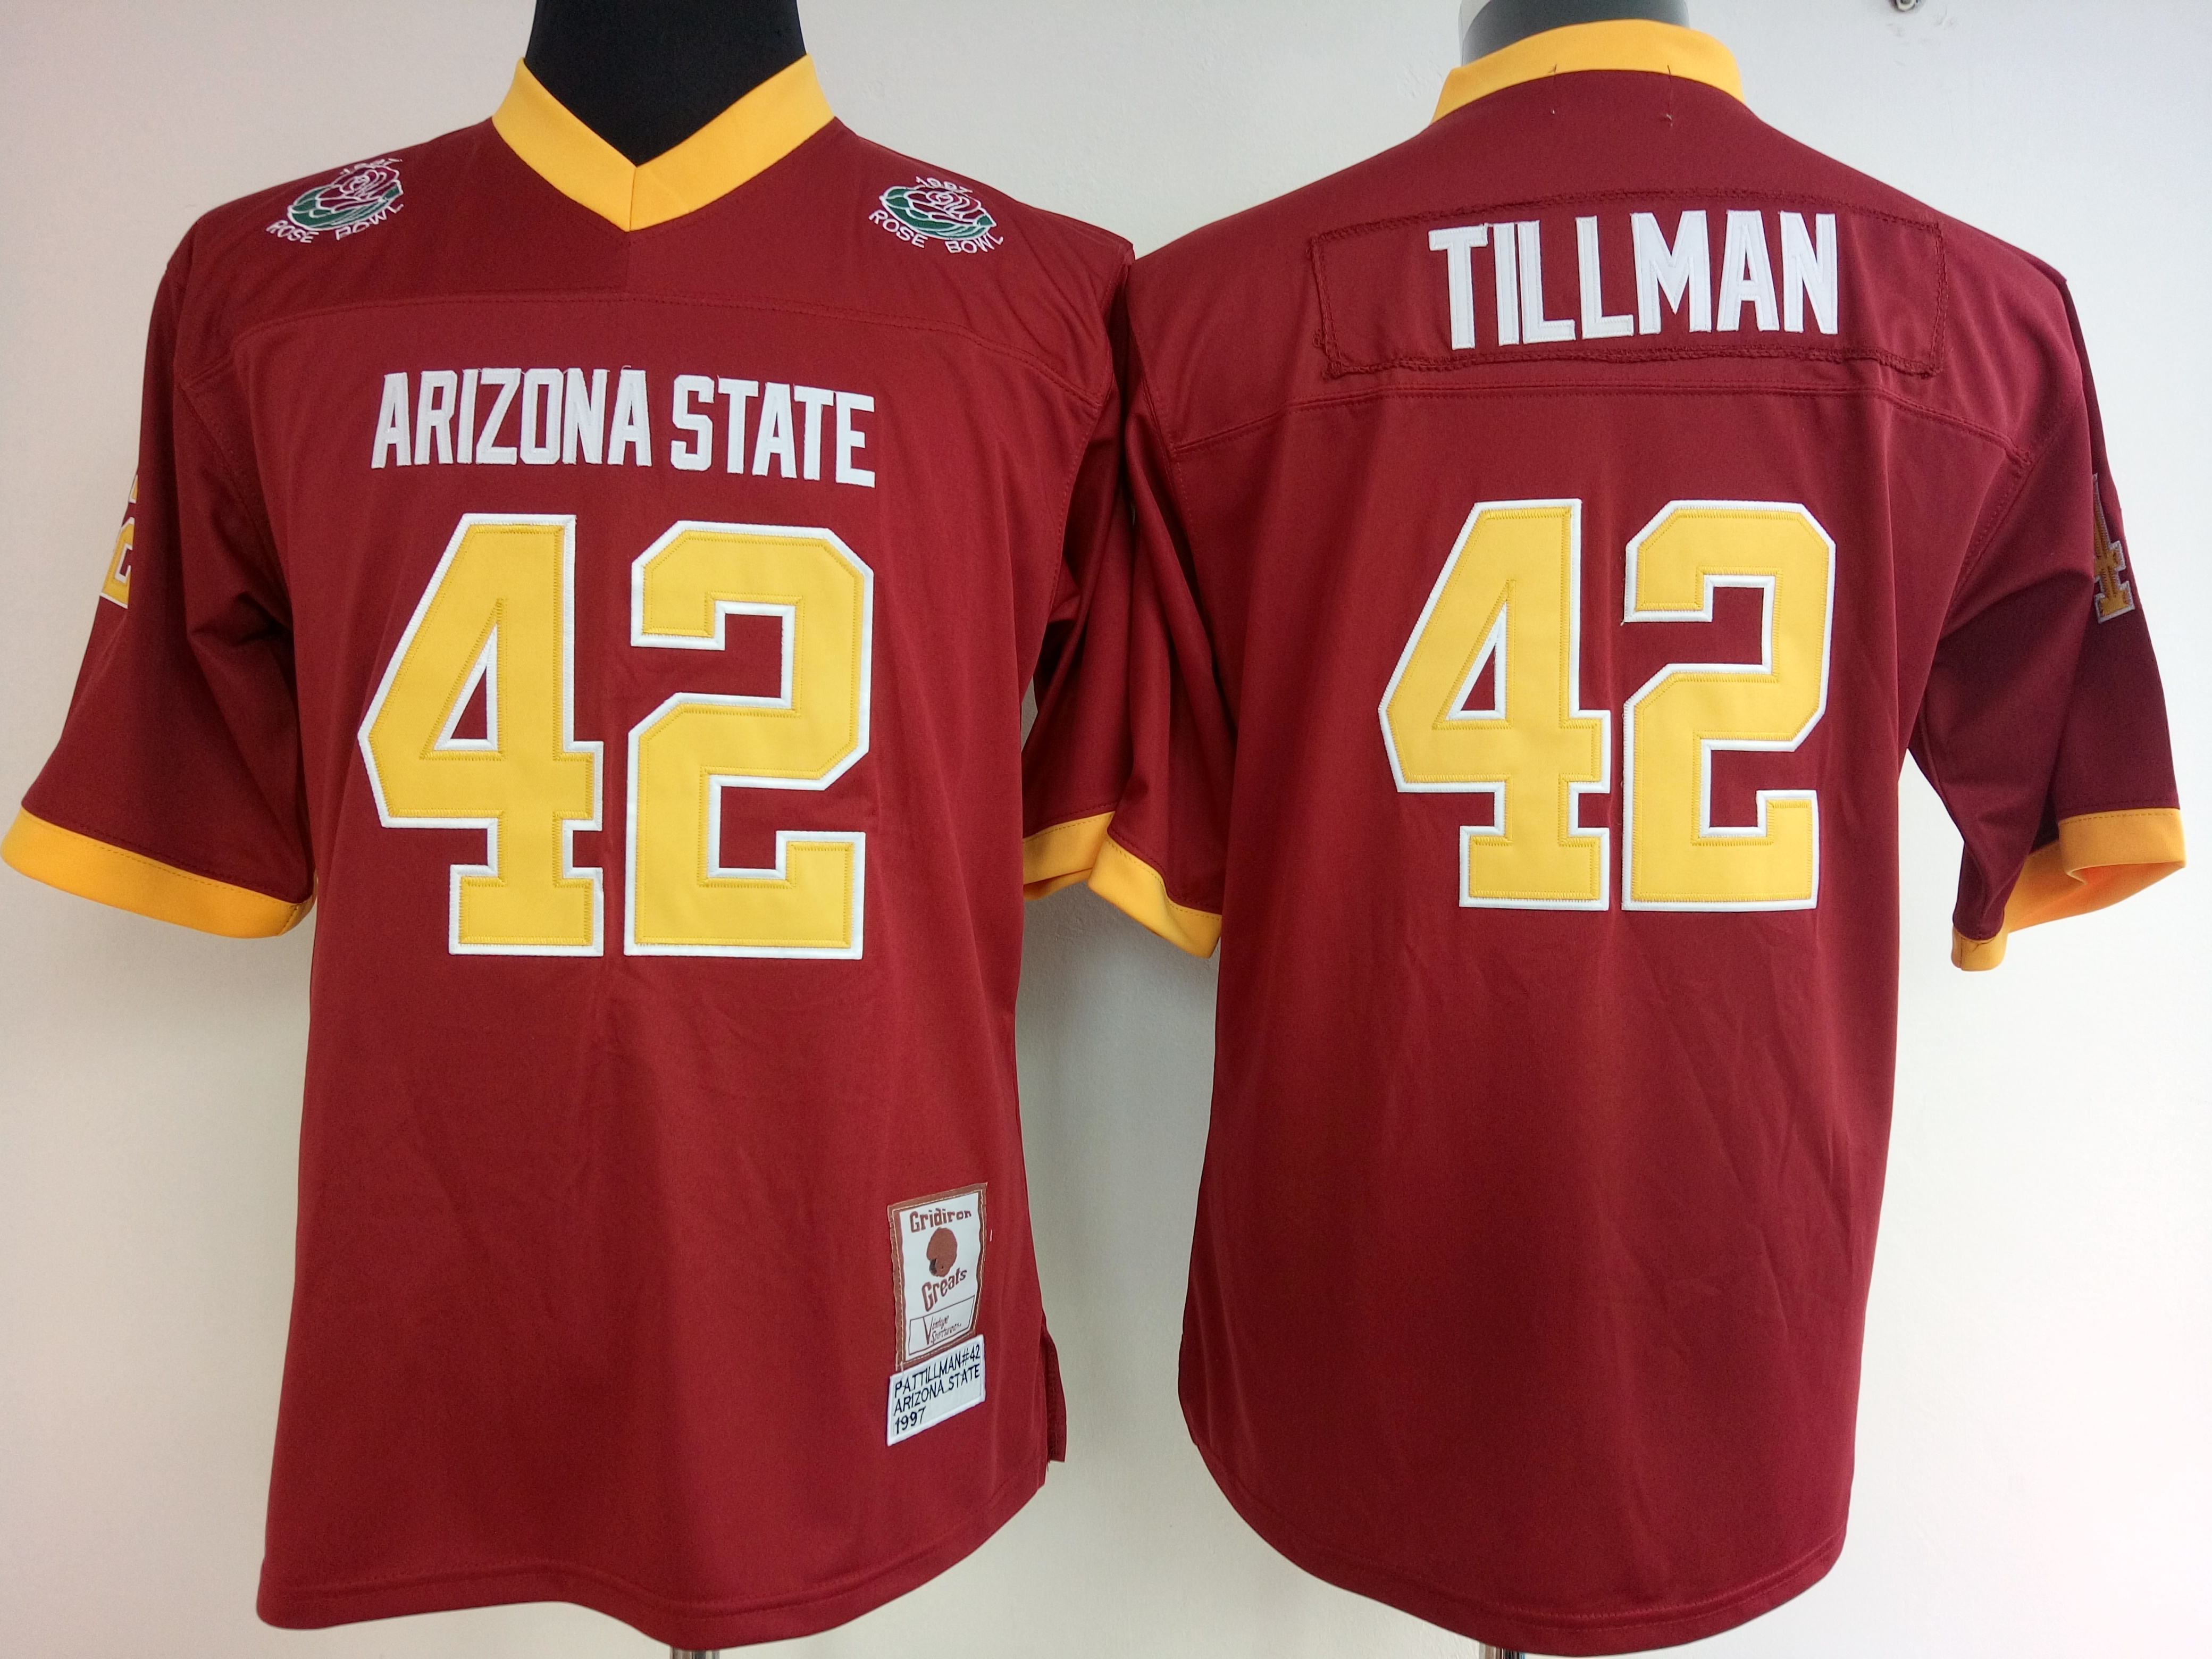 NCAA Womens Arizona State Sun Devils RED 42 Tillman jerseys